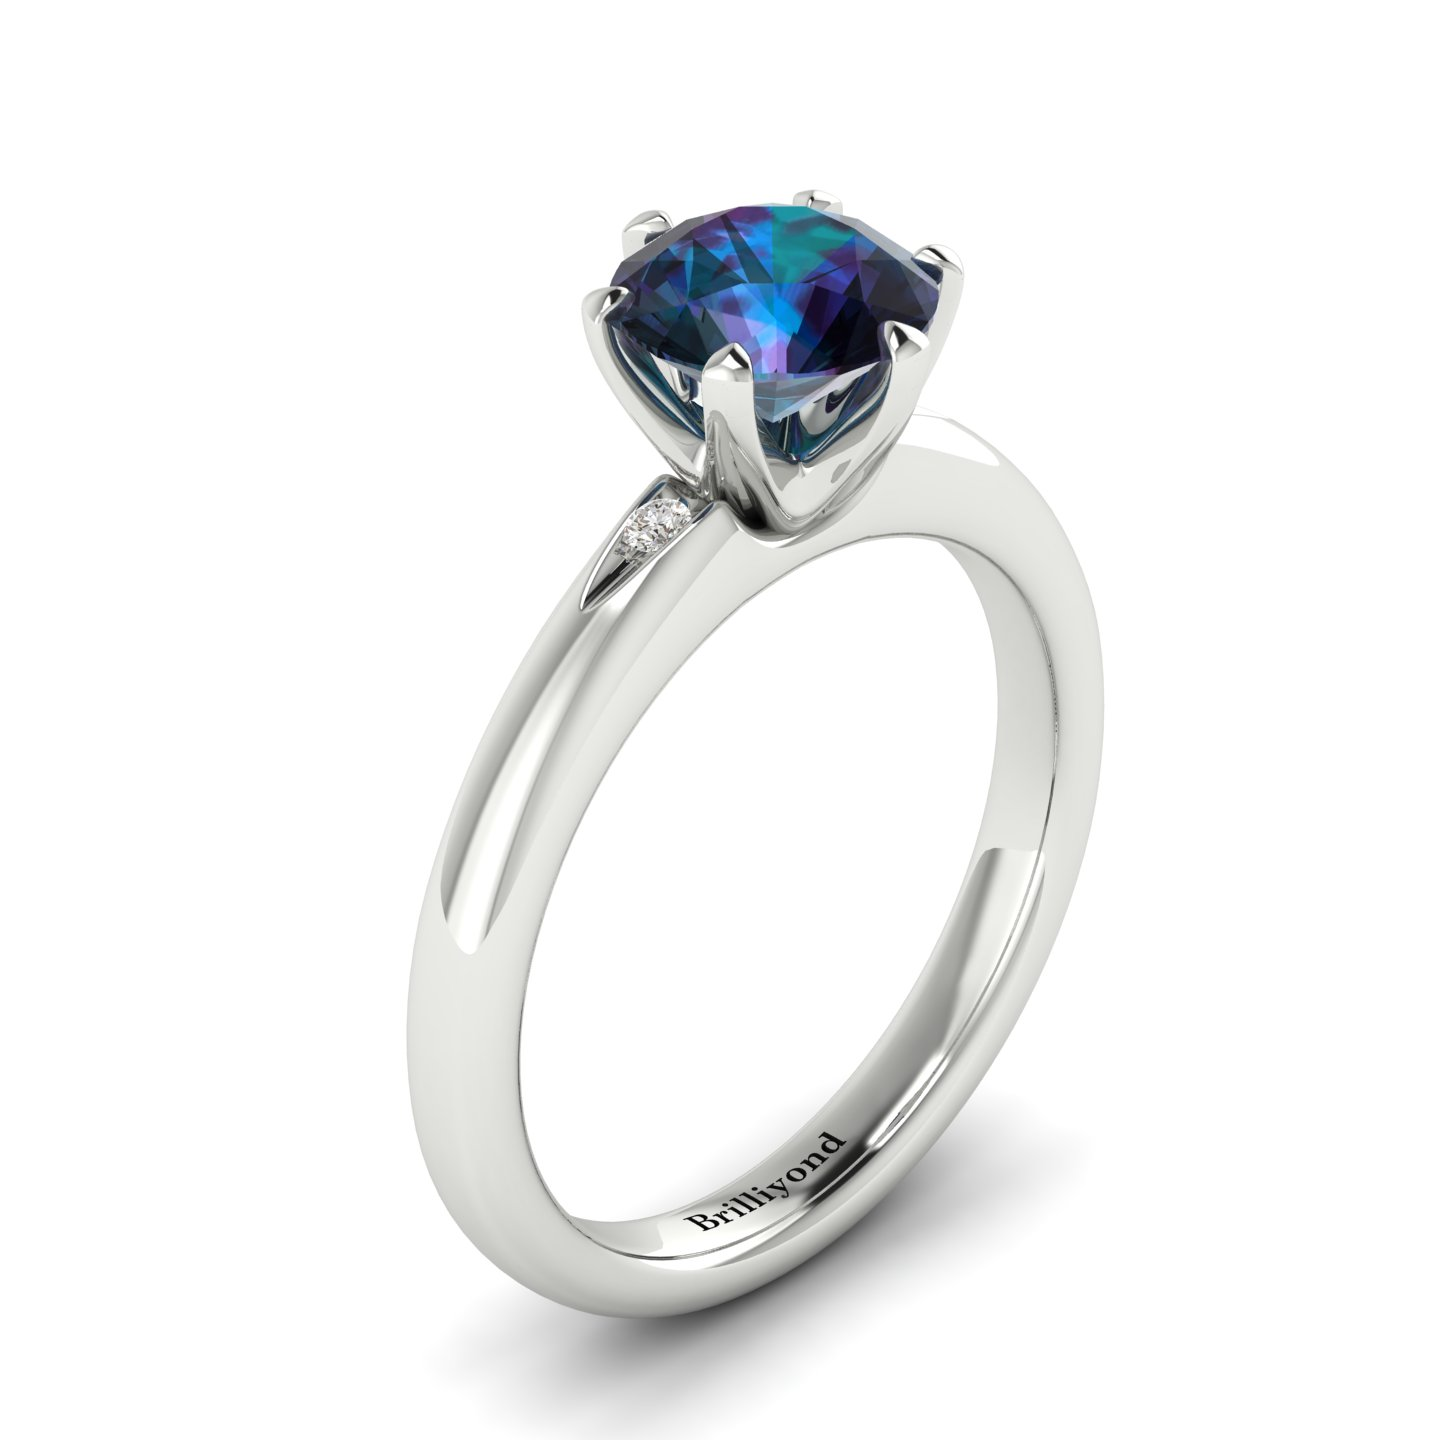 Alexandrite White Gold Solitaire Engagement Ring Byond_image1